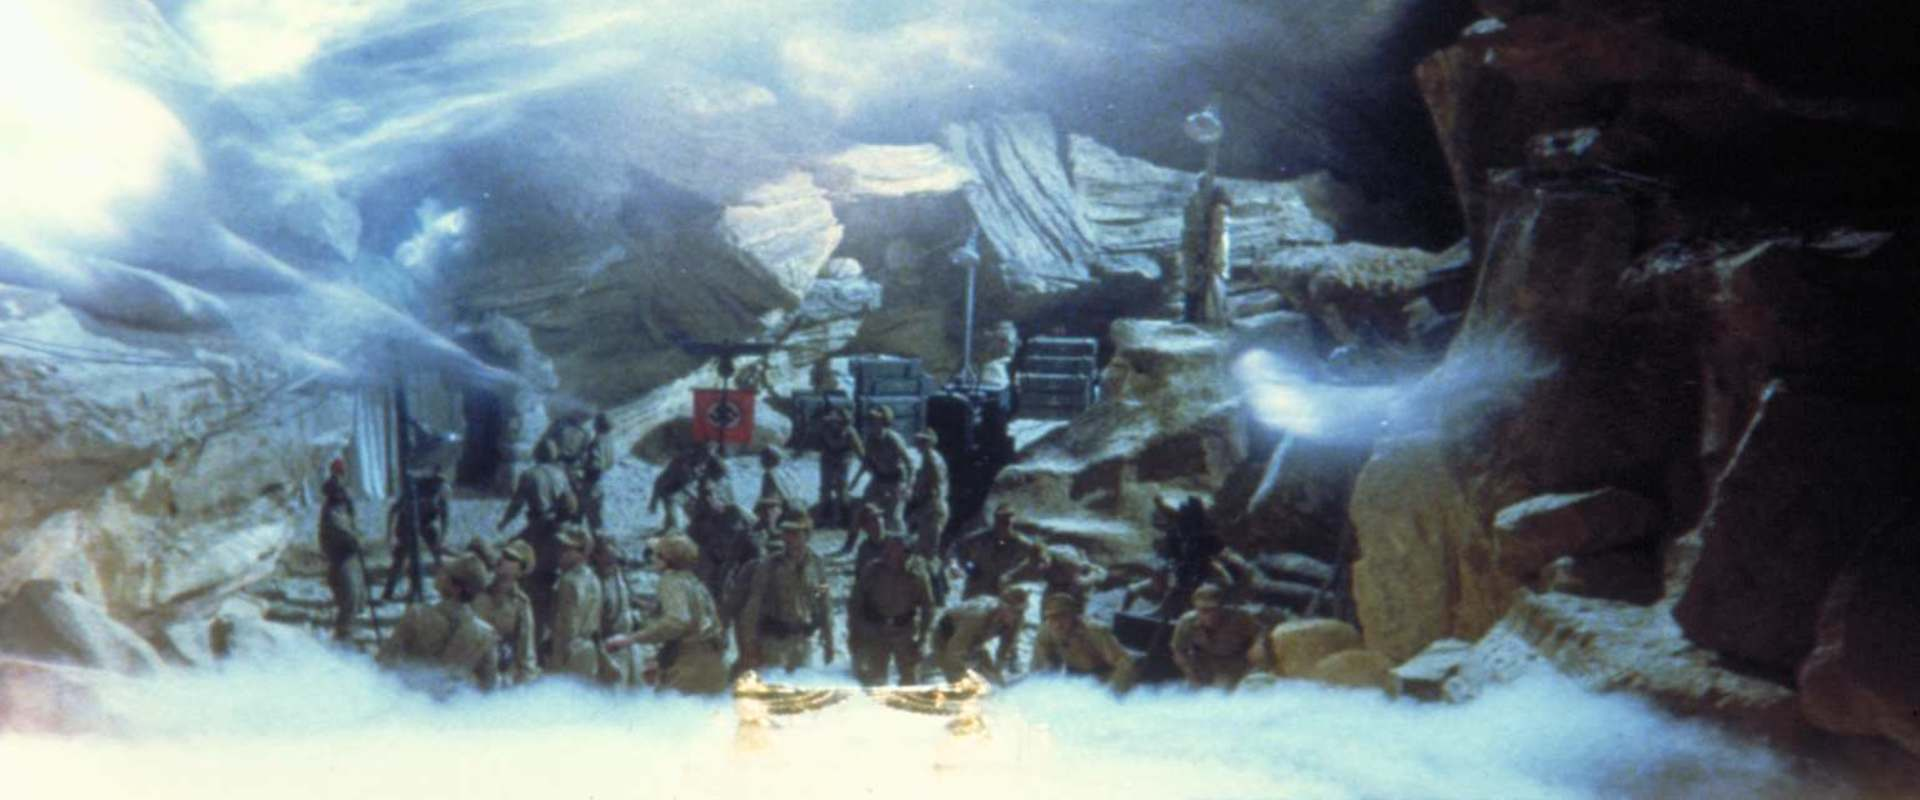 Raiders of the Lost Ark background 1